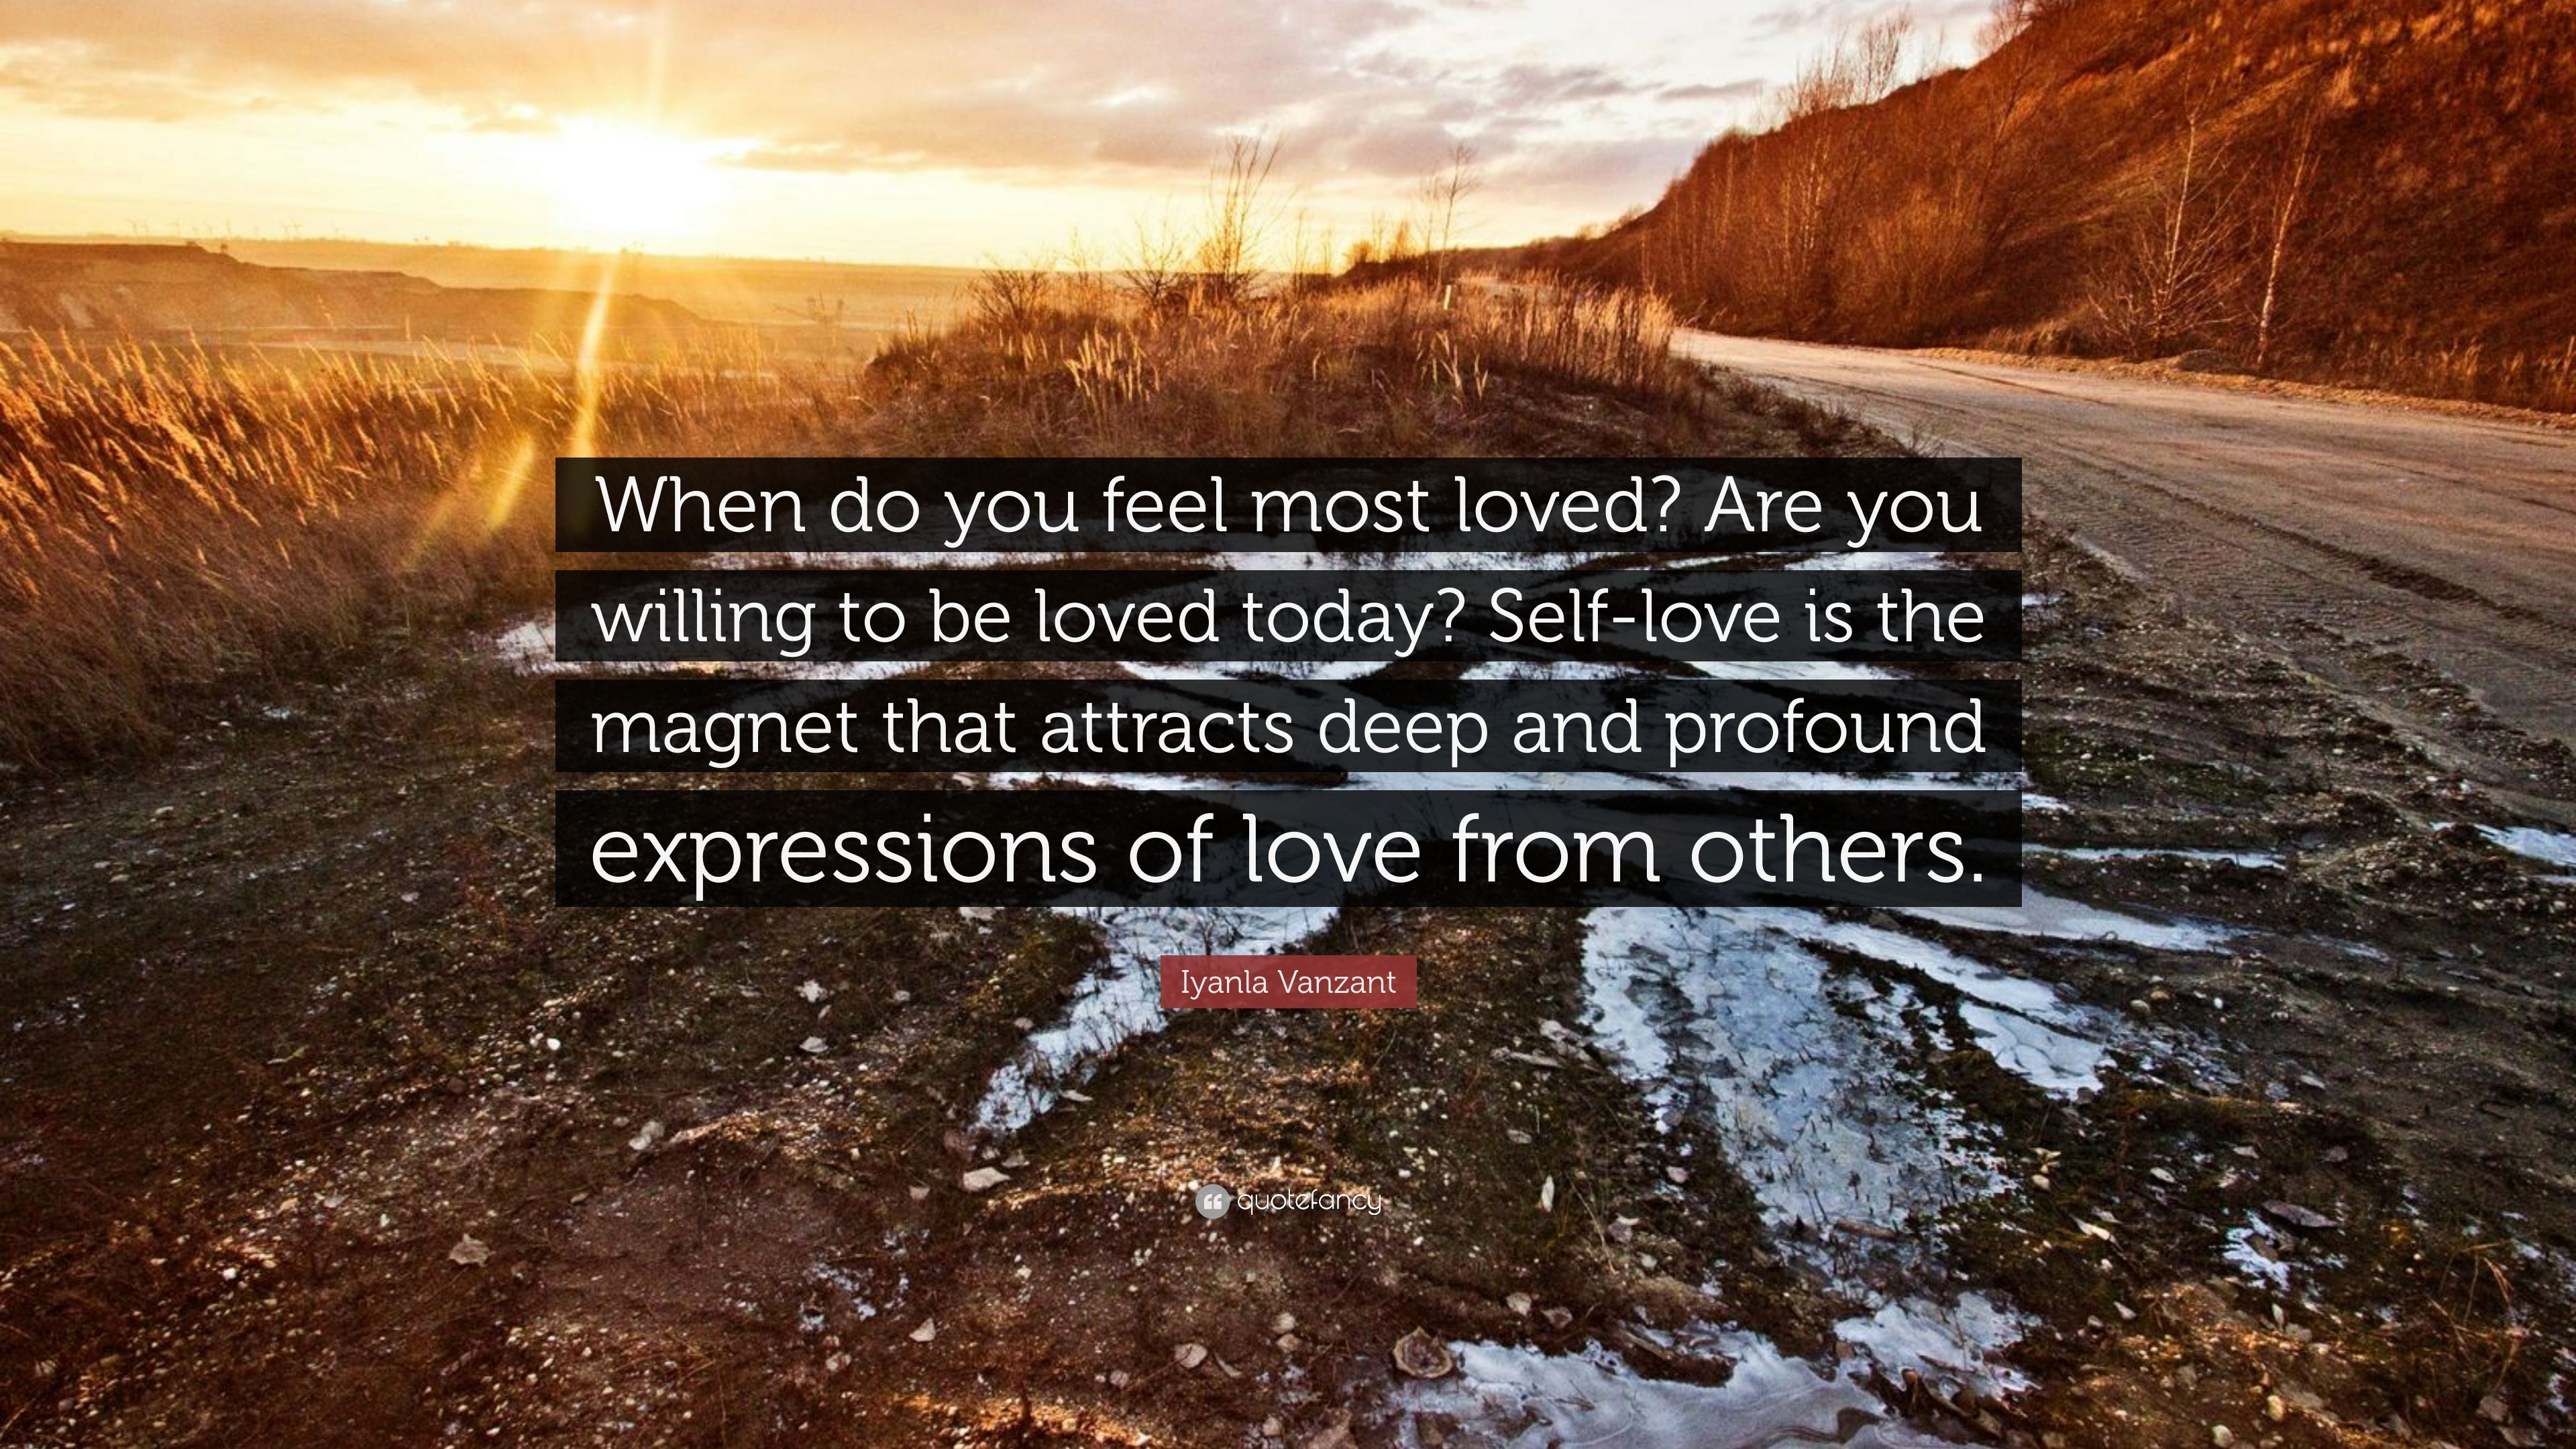 Iyanla Vanzant Quote When Do You Feel Most Loved Are You Willing